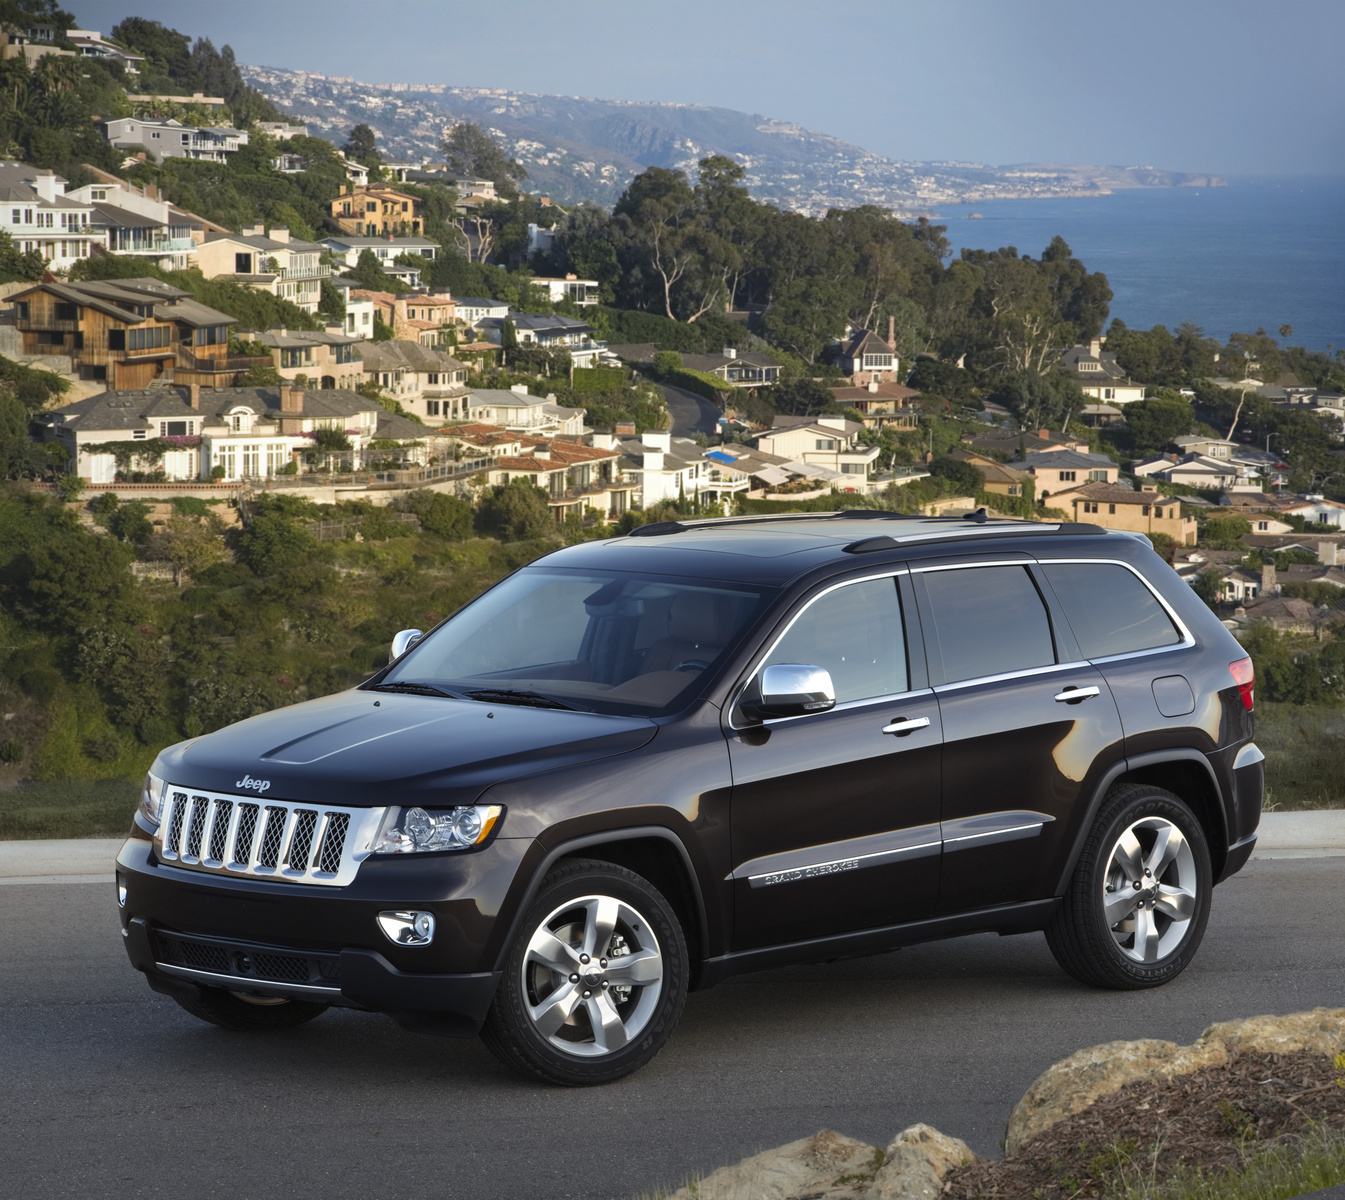 2013 jeep grand cherokee overview cargurus. Black Bedroom Furniture Sets. Home Design Ideas